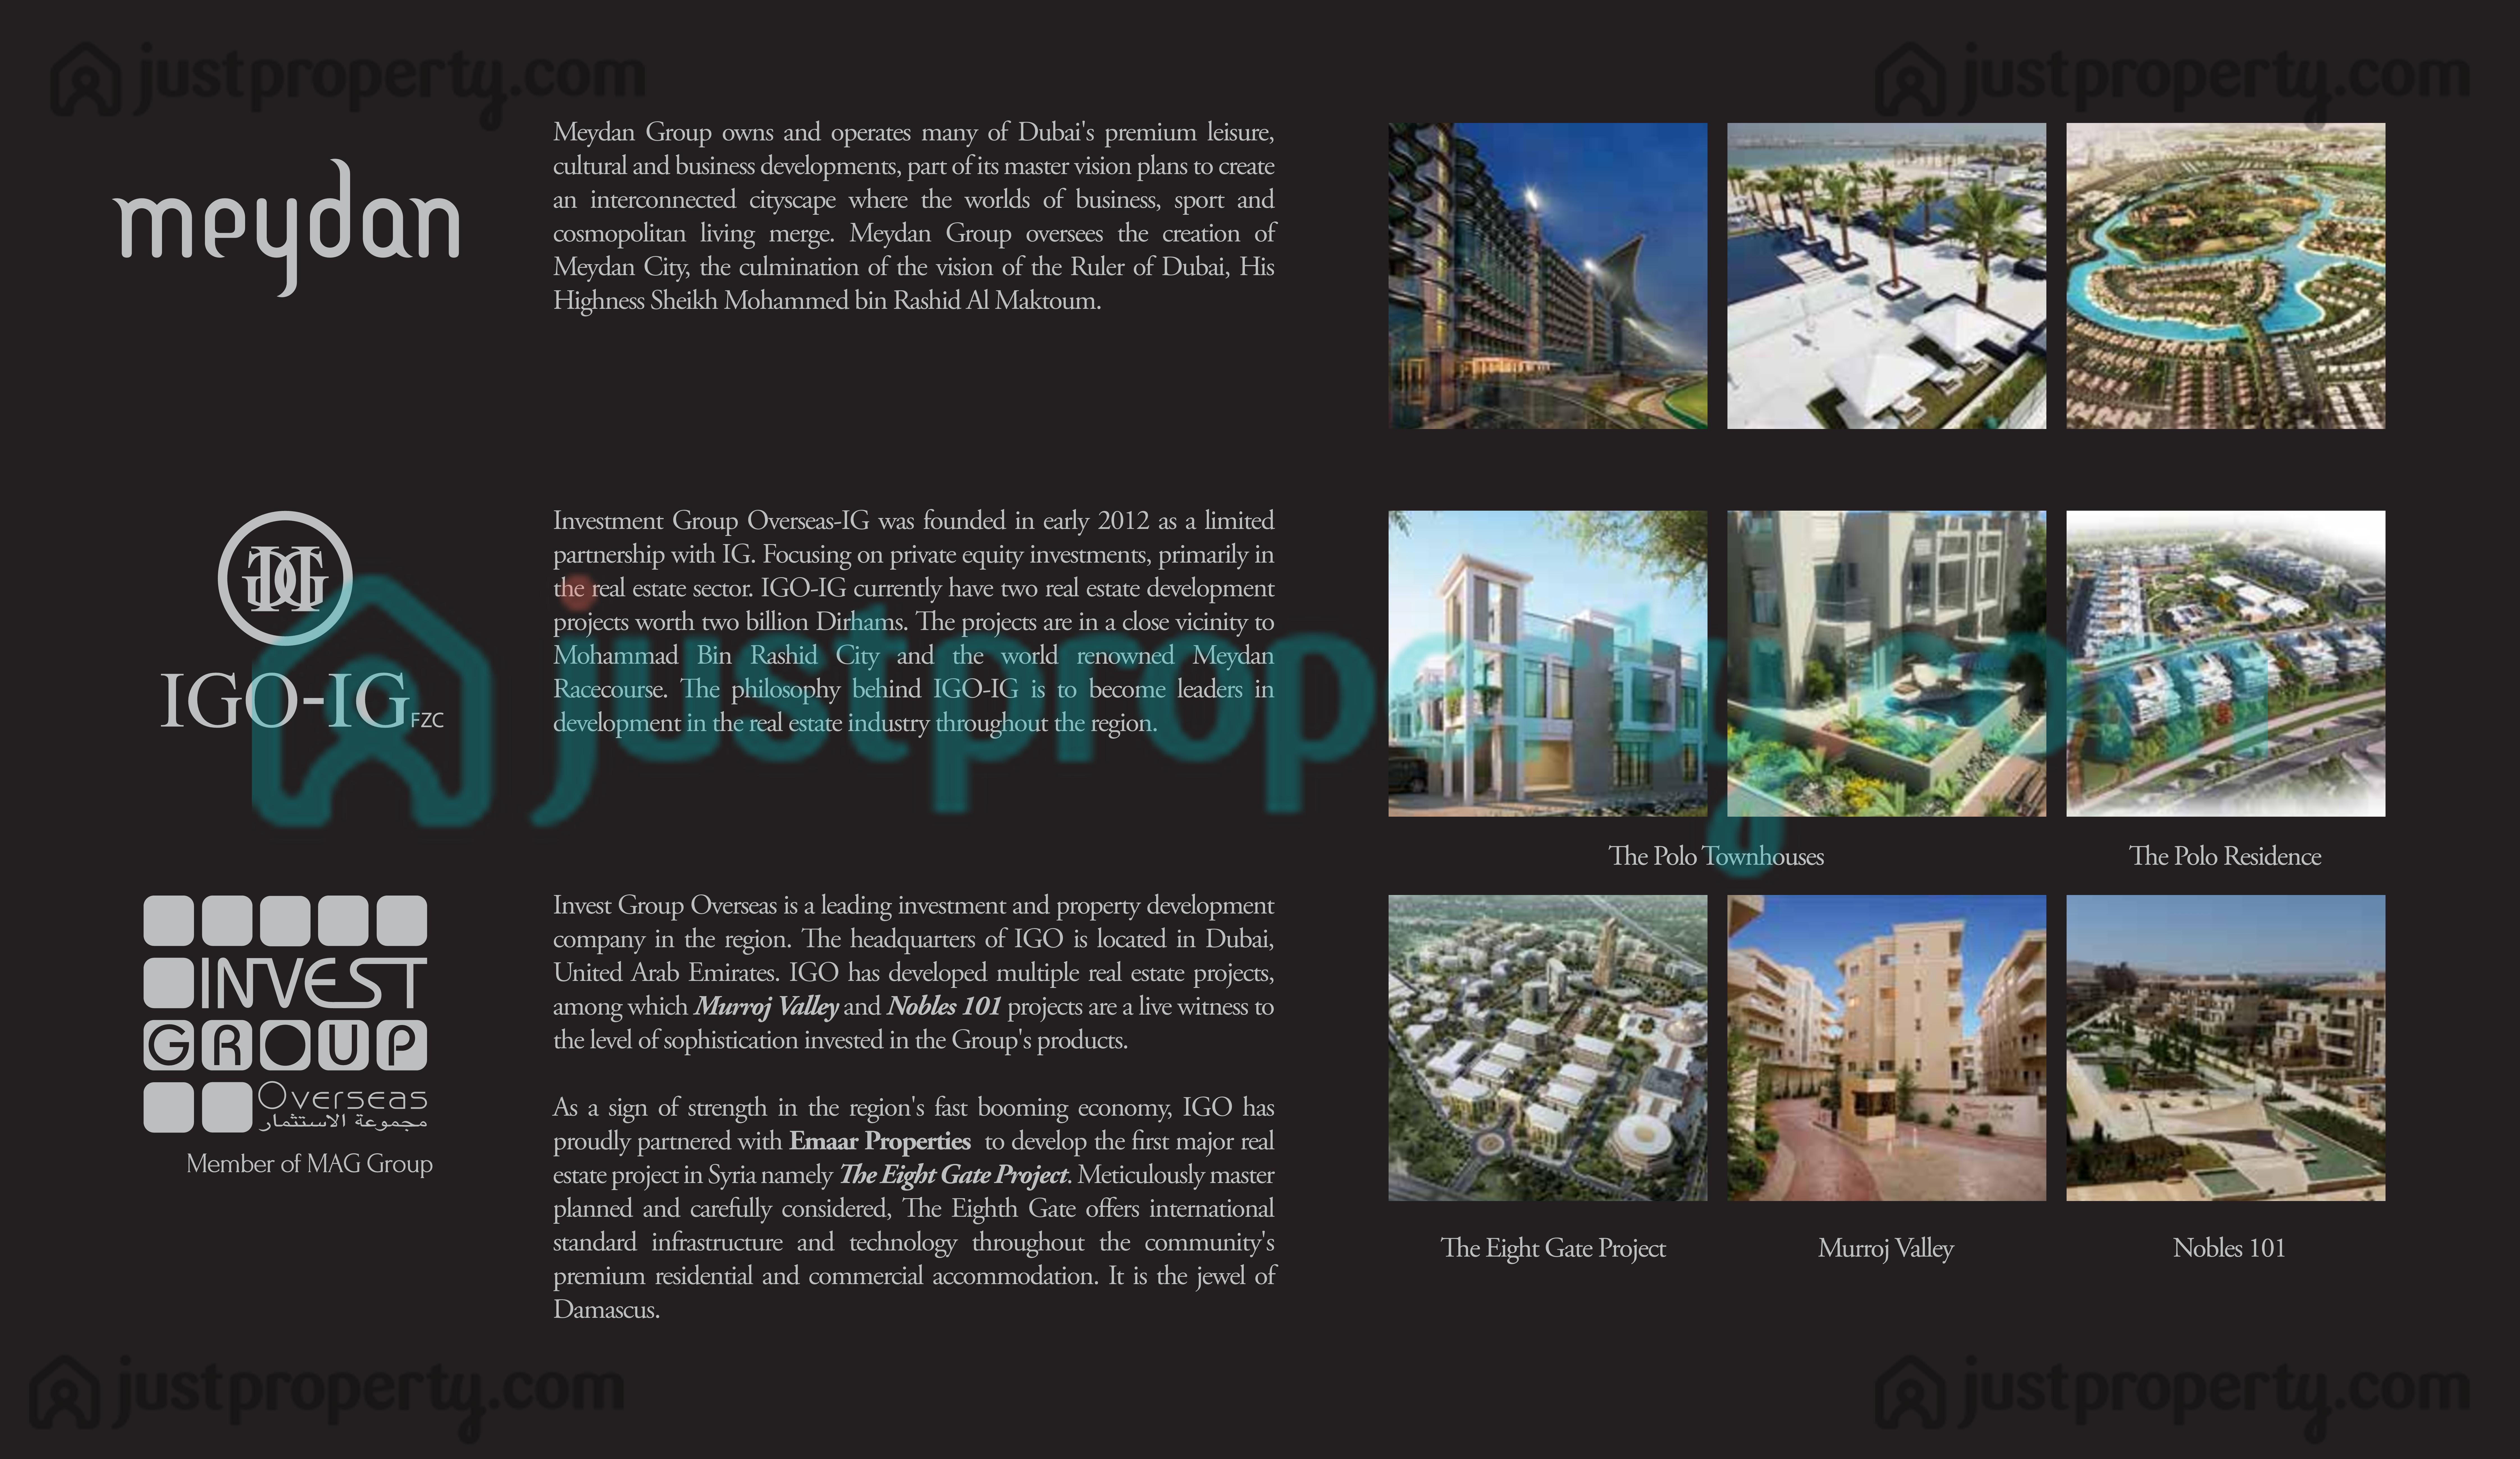 mbr city the polo floor plans justproperty com